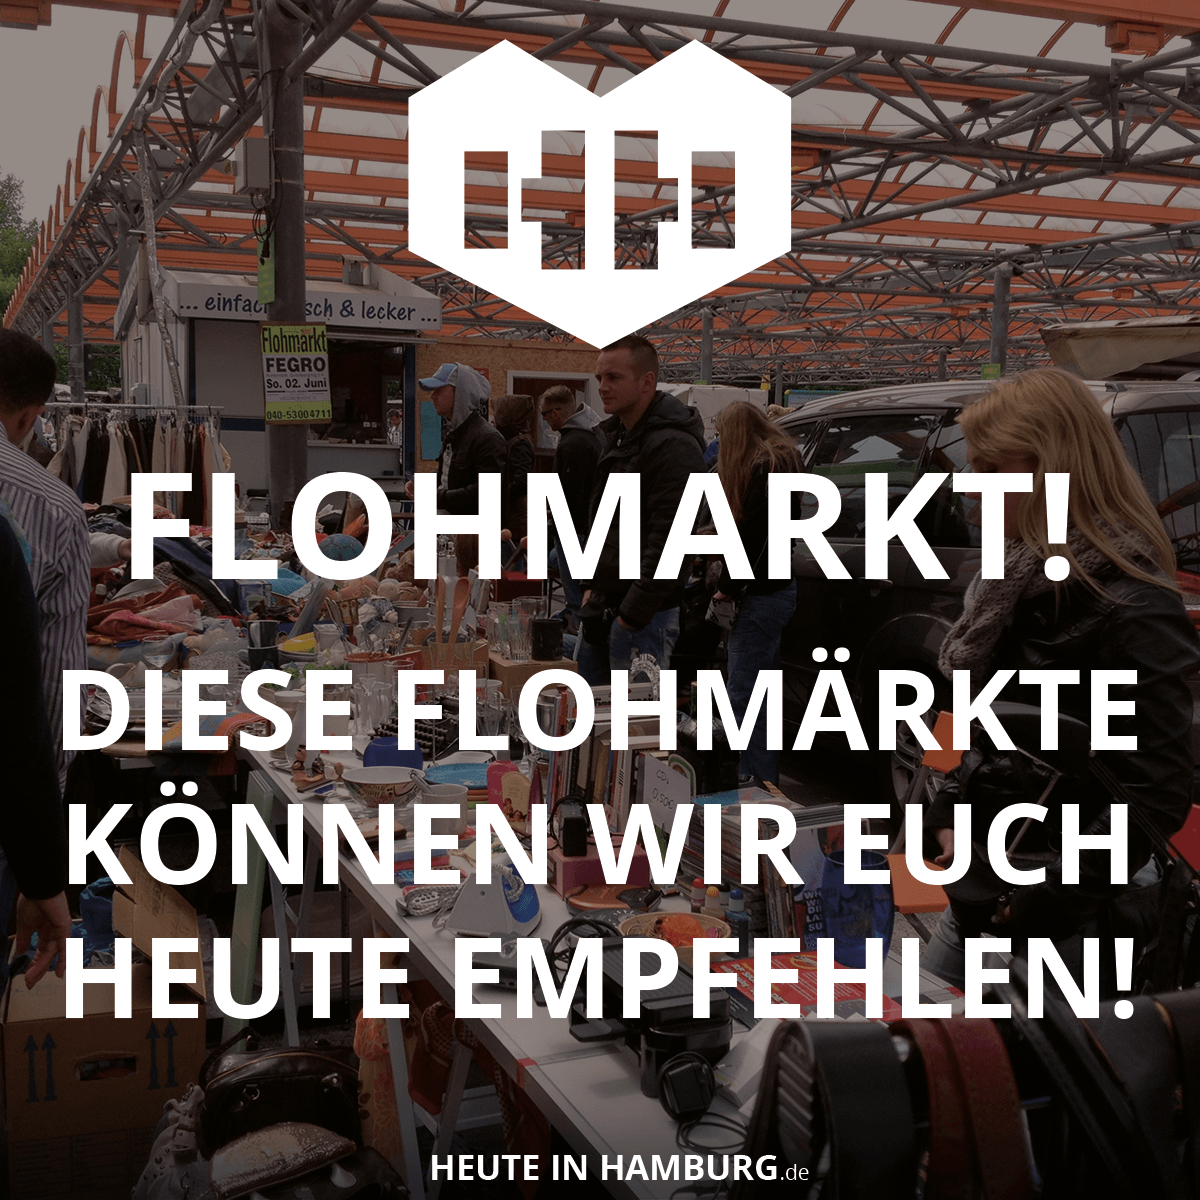 flohmarkt hopping durch hamburg sie geht wieder los die warme jahreszeit und mit ihr all die. Black Bedroom Furniture Sets. Home Design Ideas